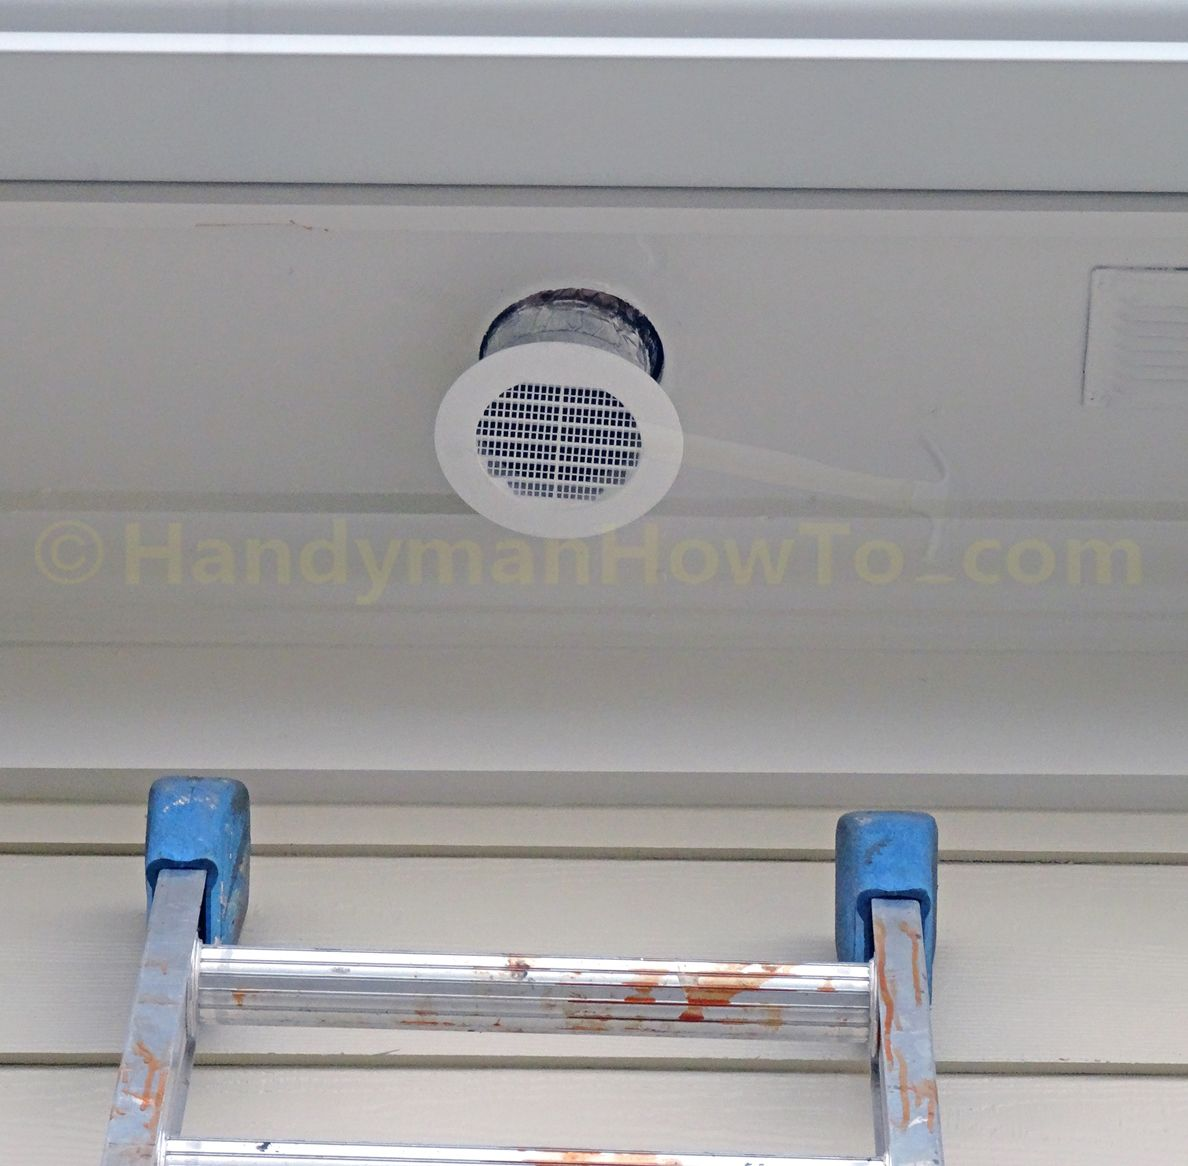 How To Install A Soffit Vent And Ductwork For A Bathroom Vent Fan